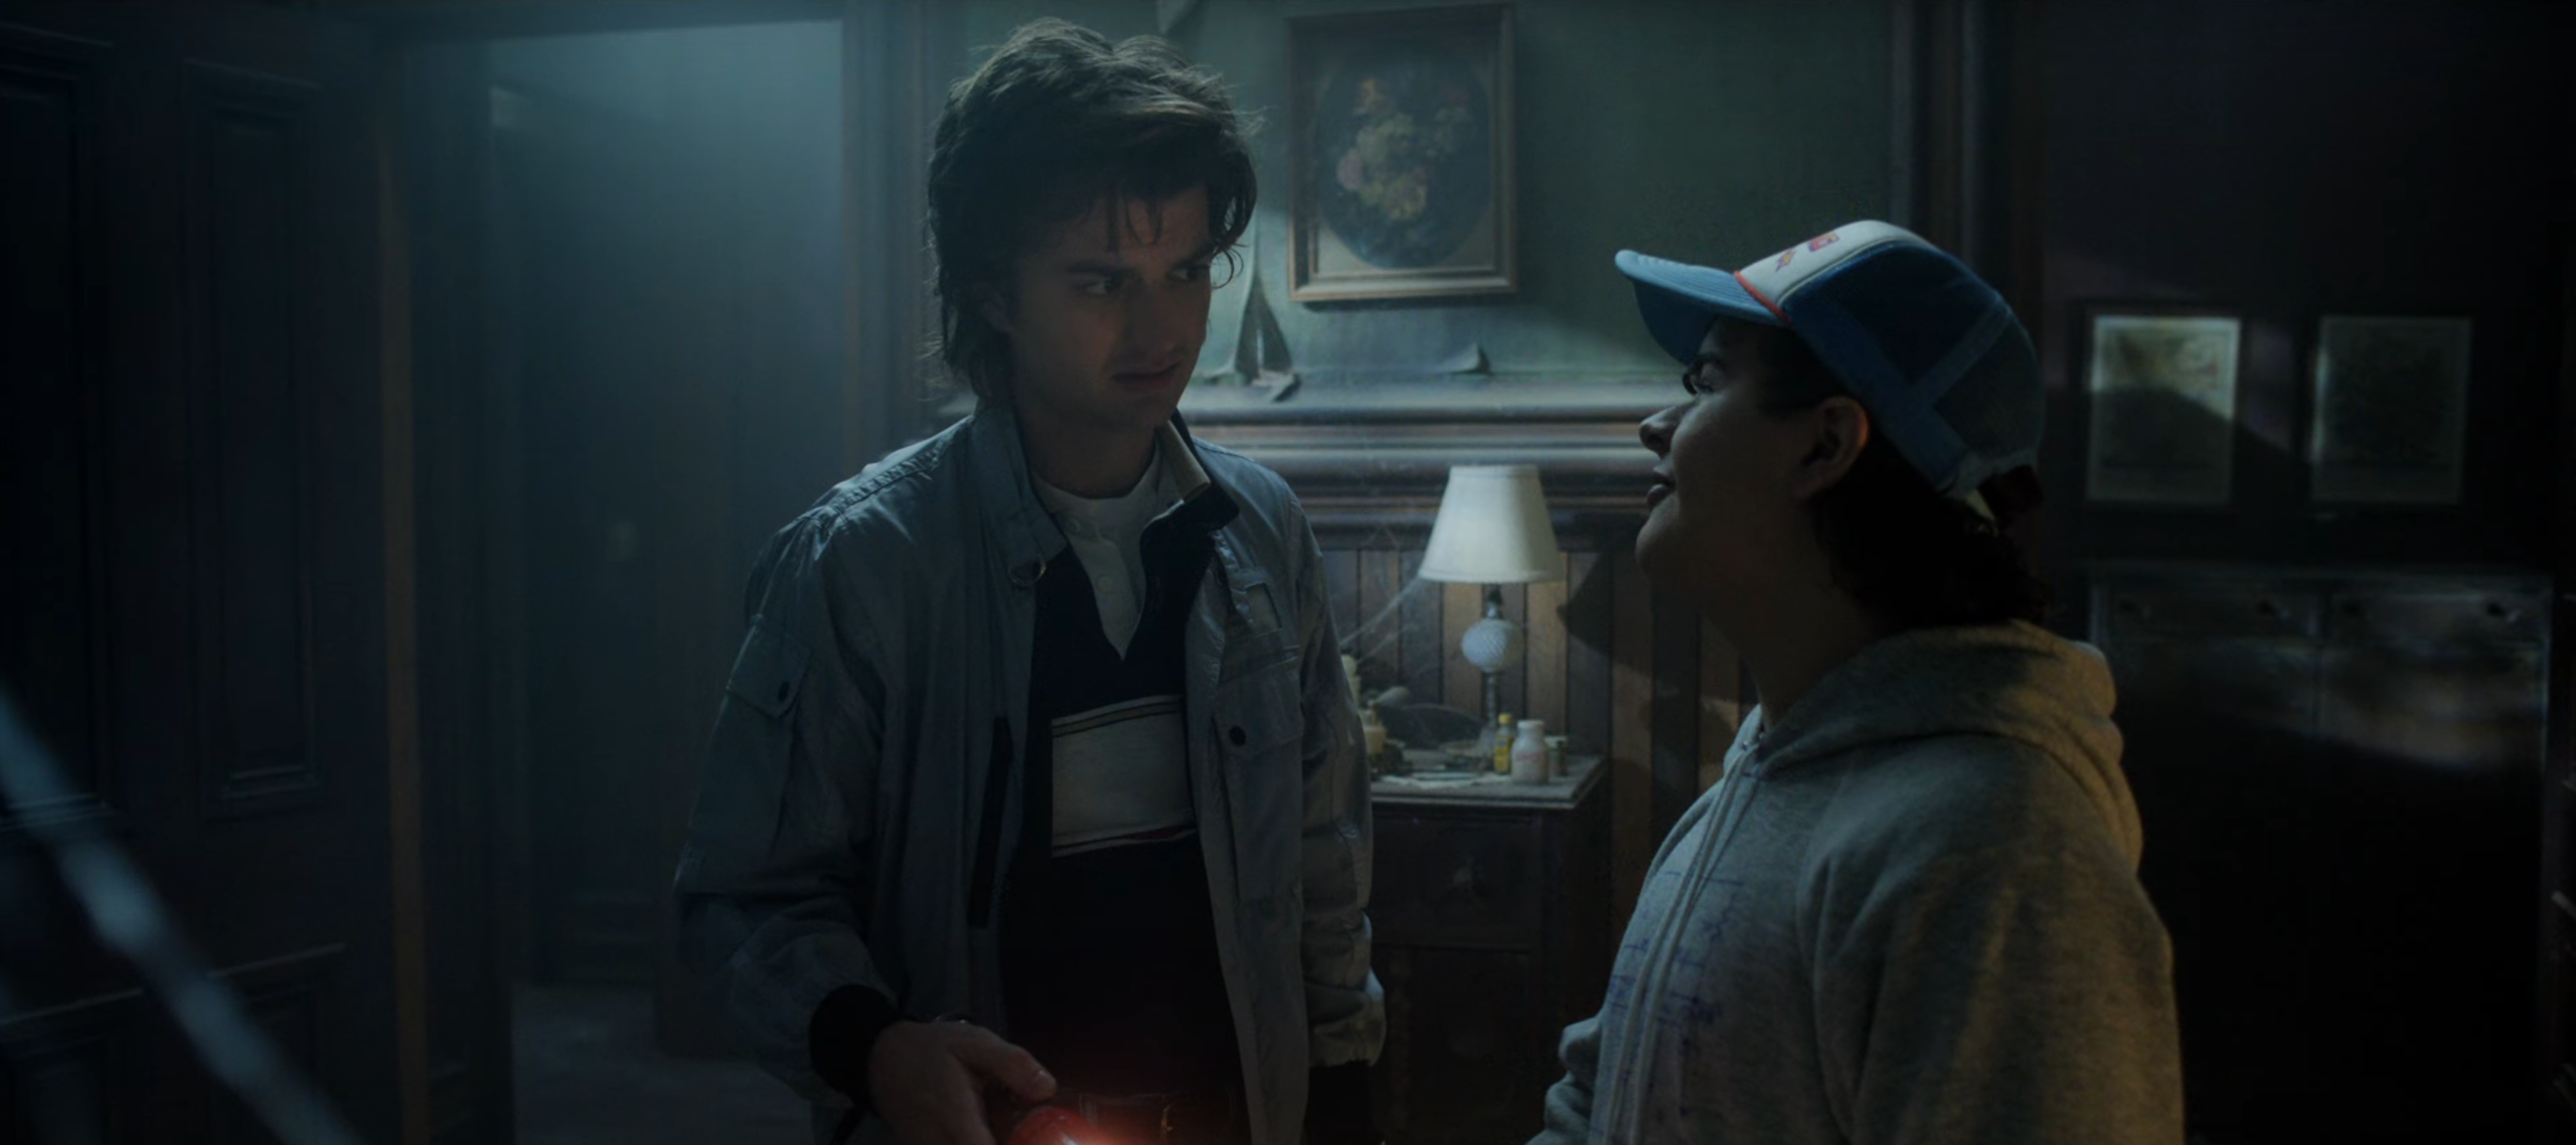 Steve and Dustin in a haunted house from Stranger Things season 4